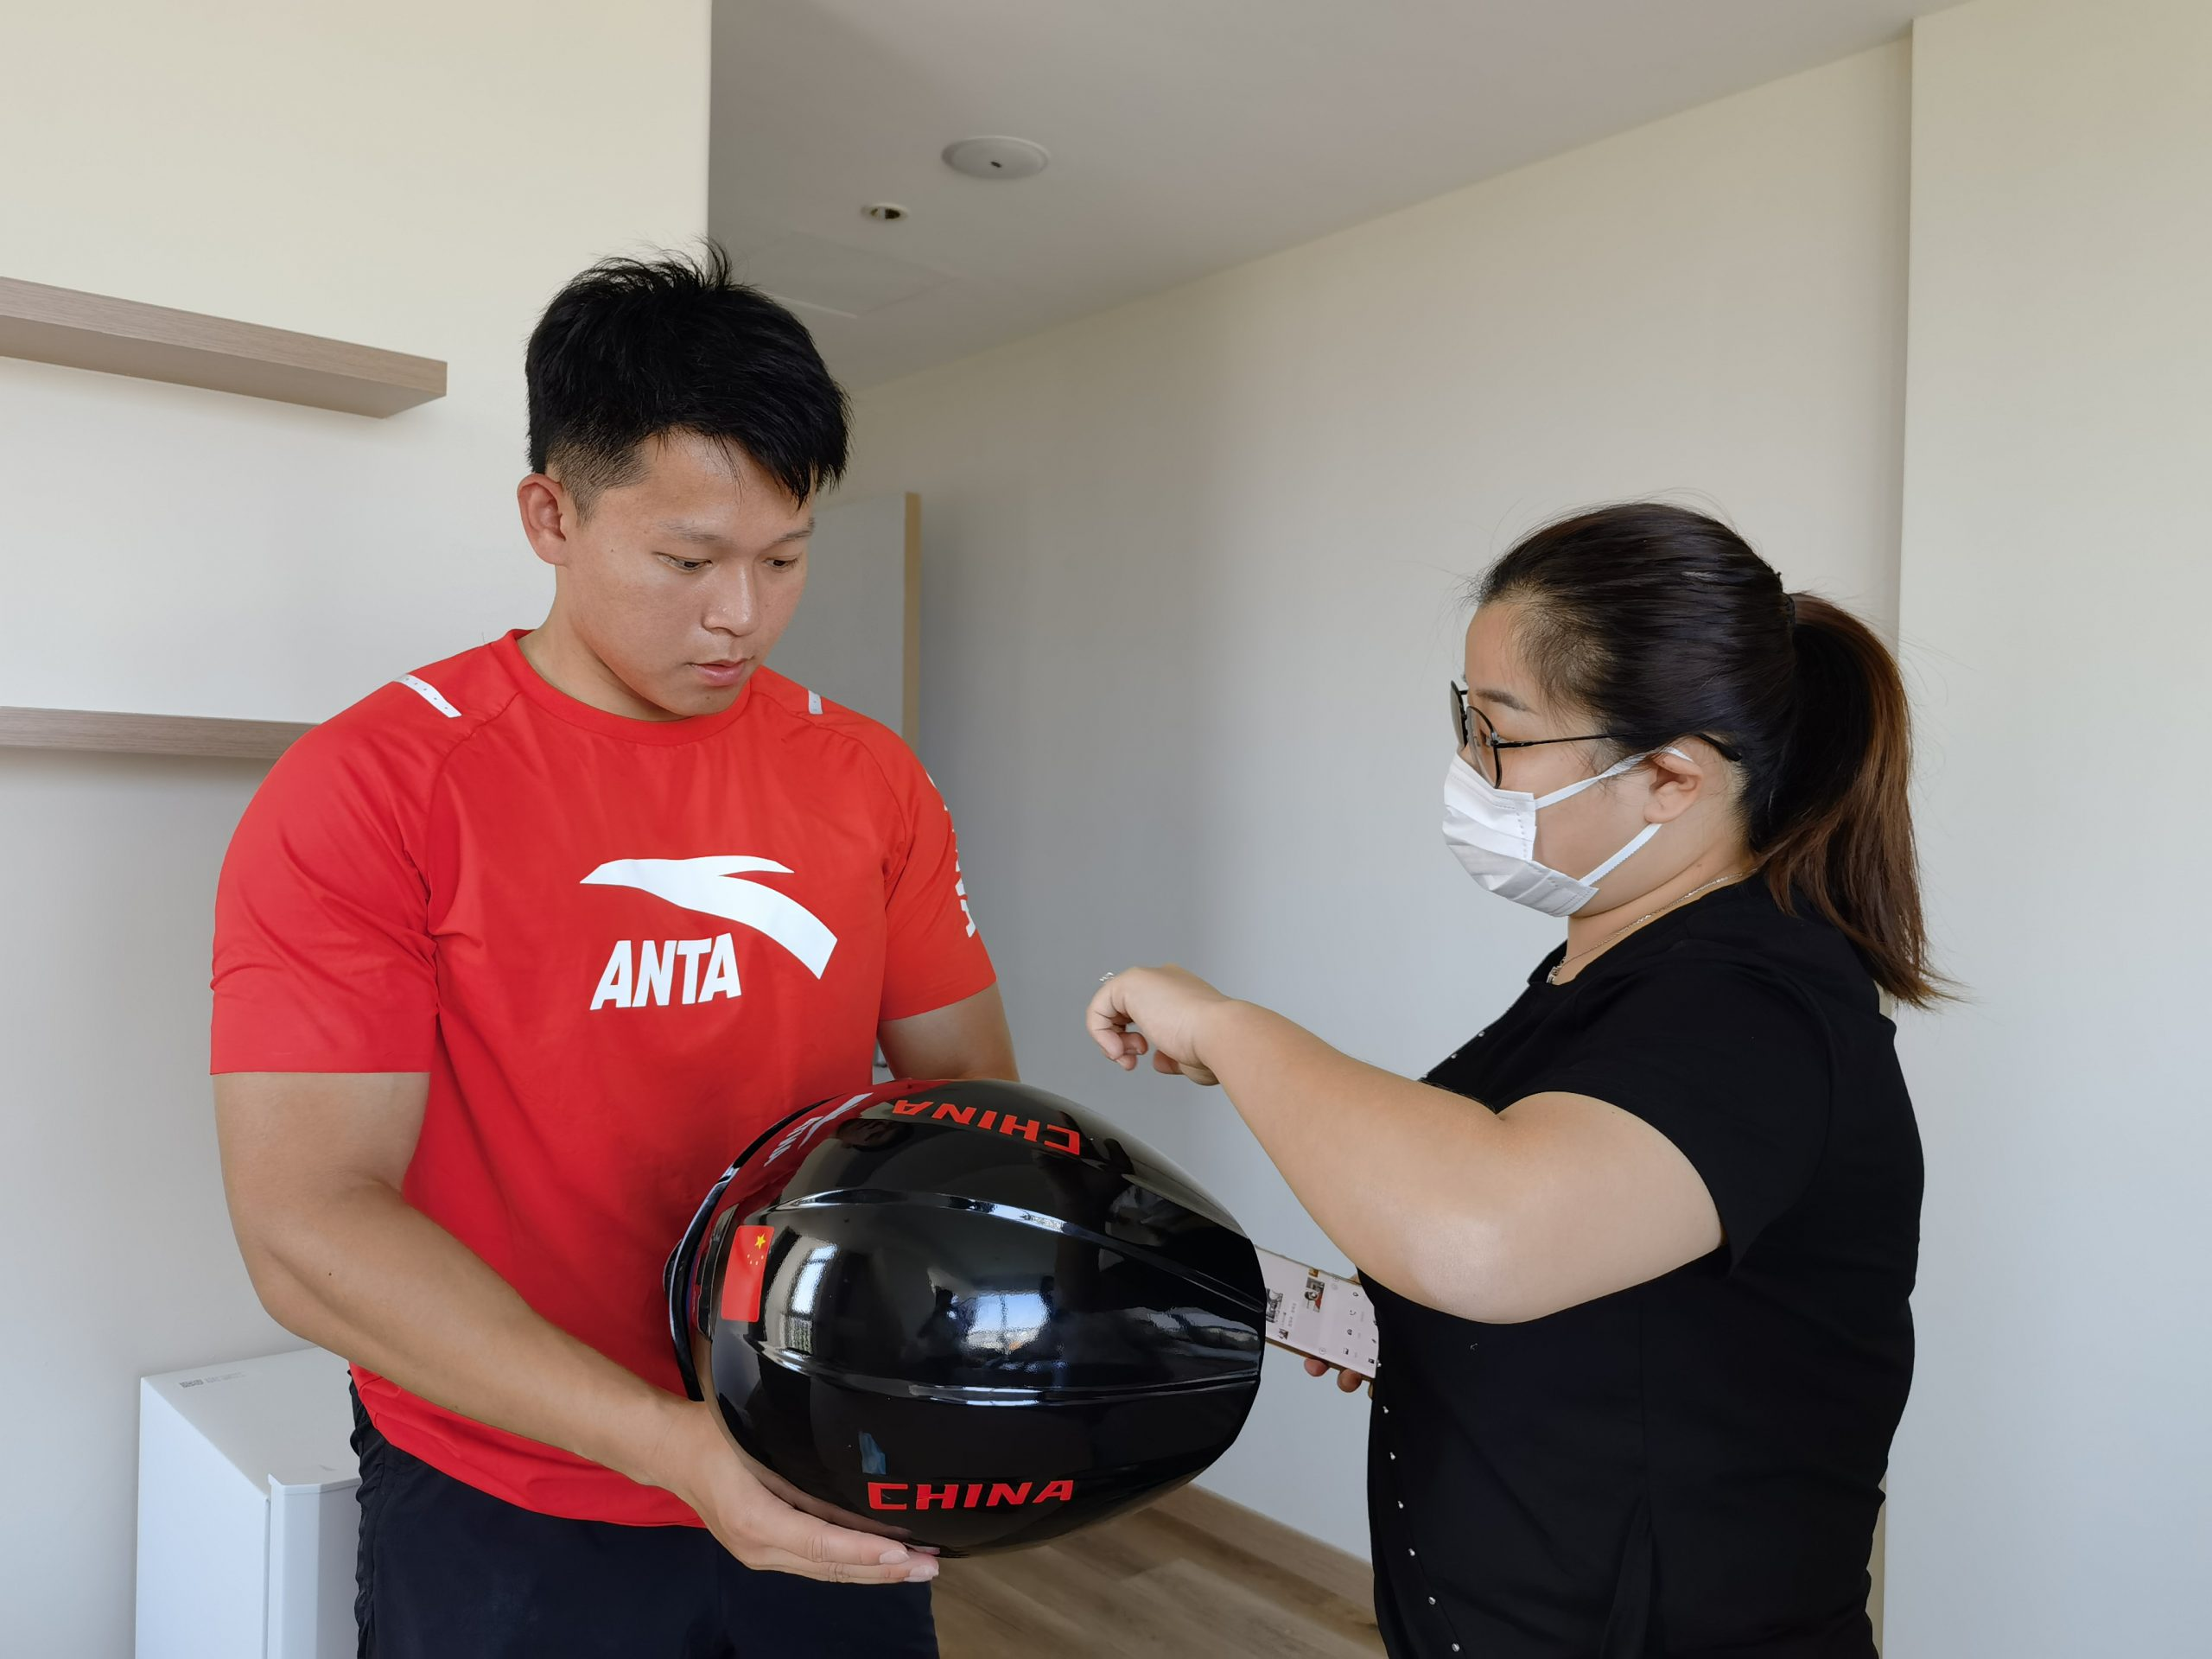 Interacting with athletes using head protective gear